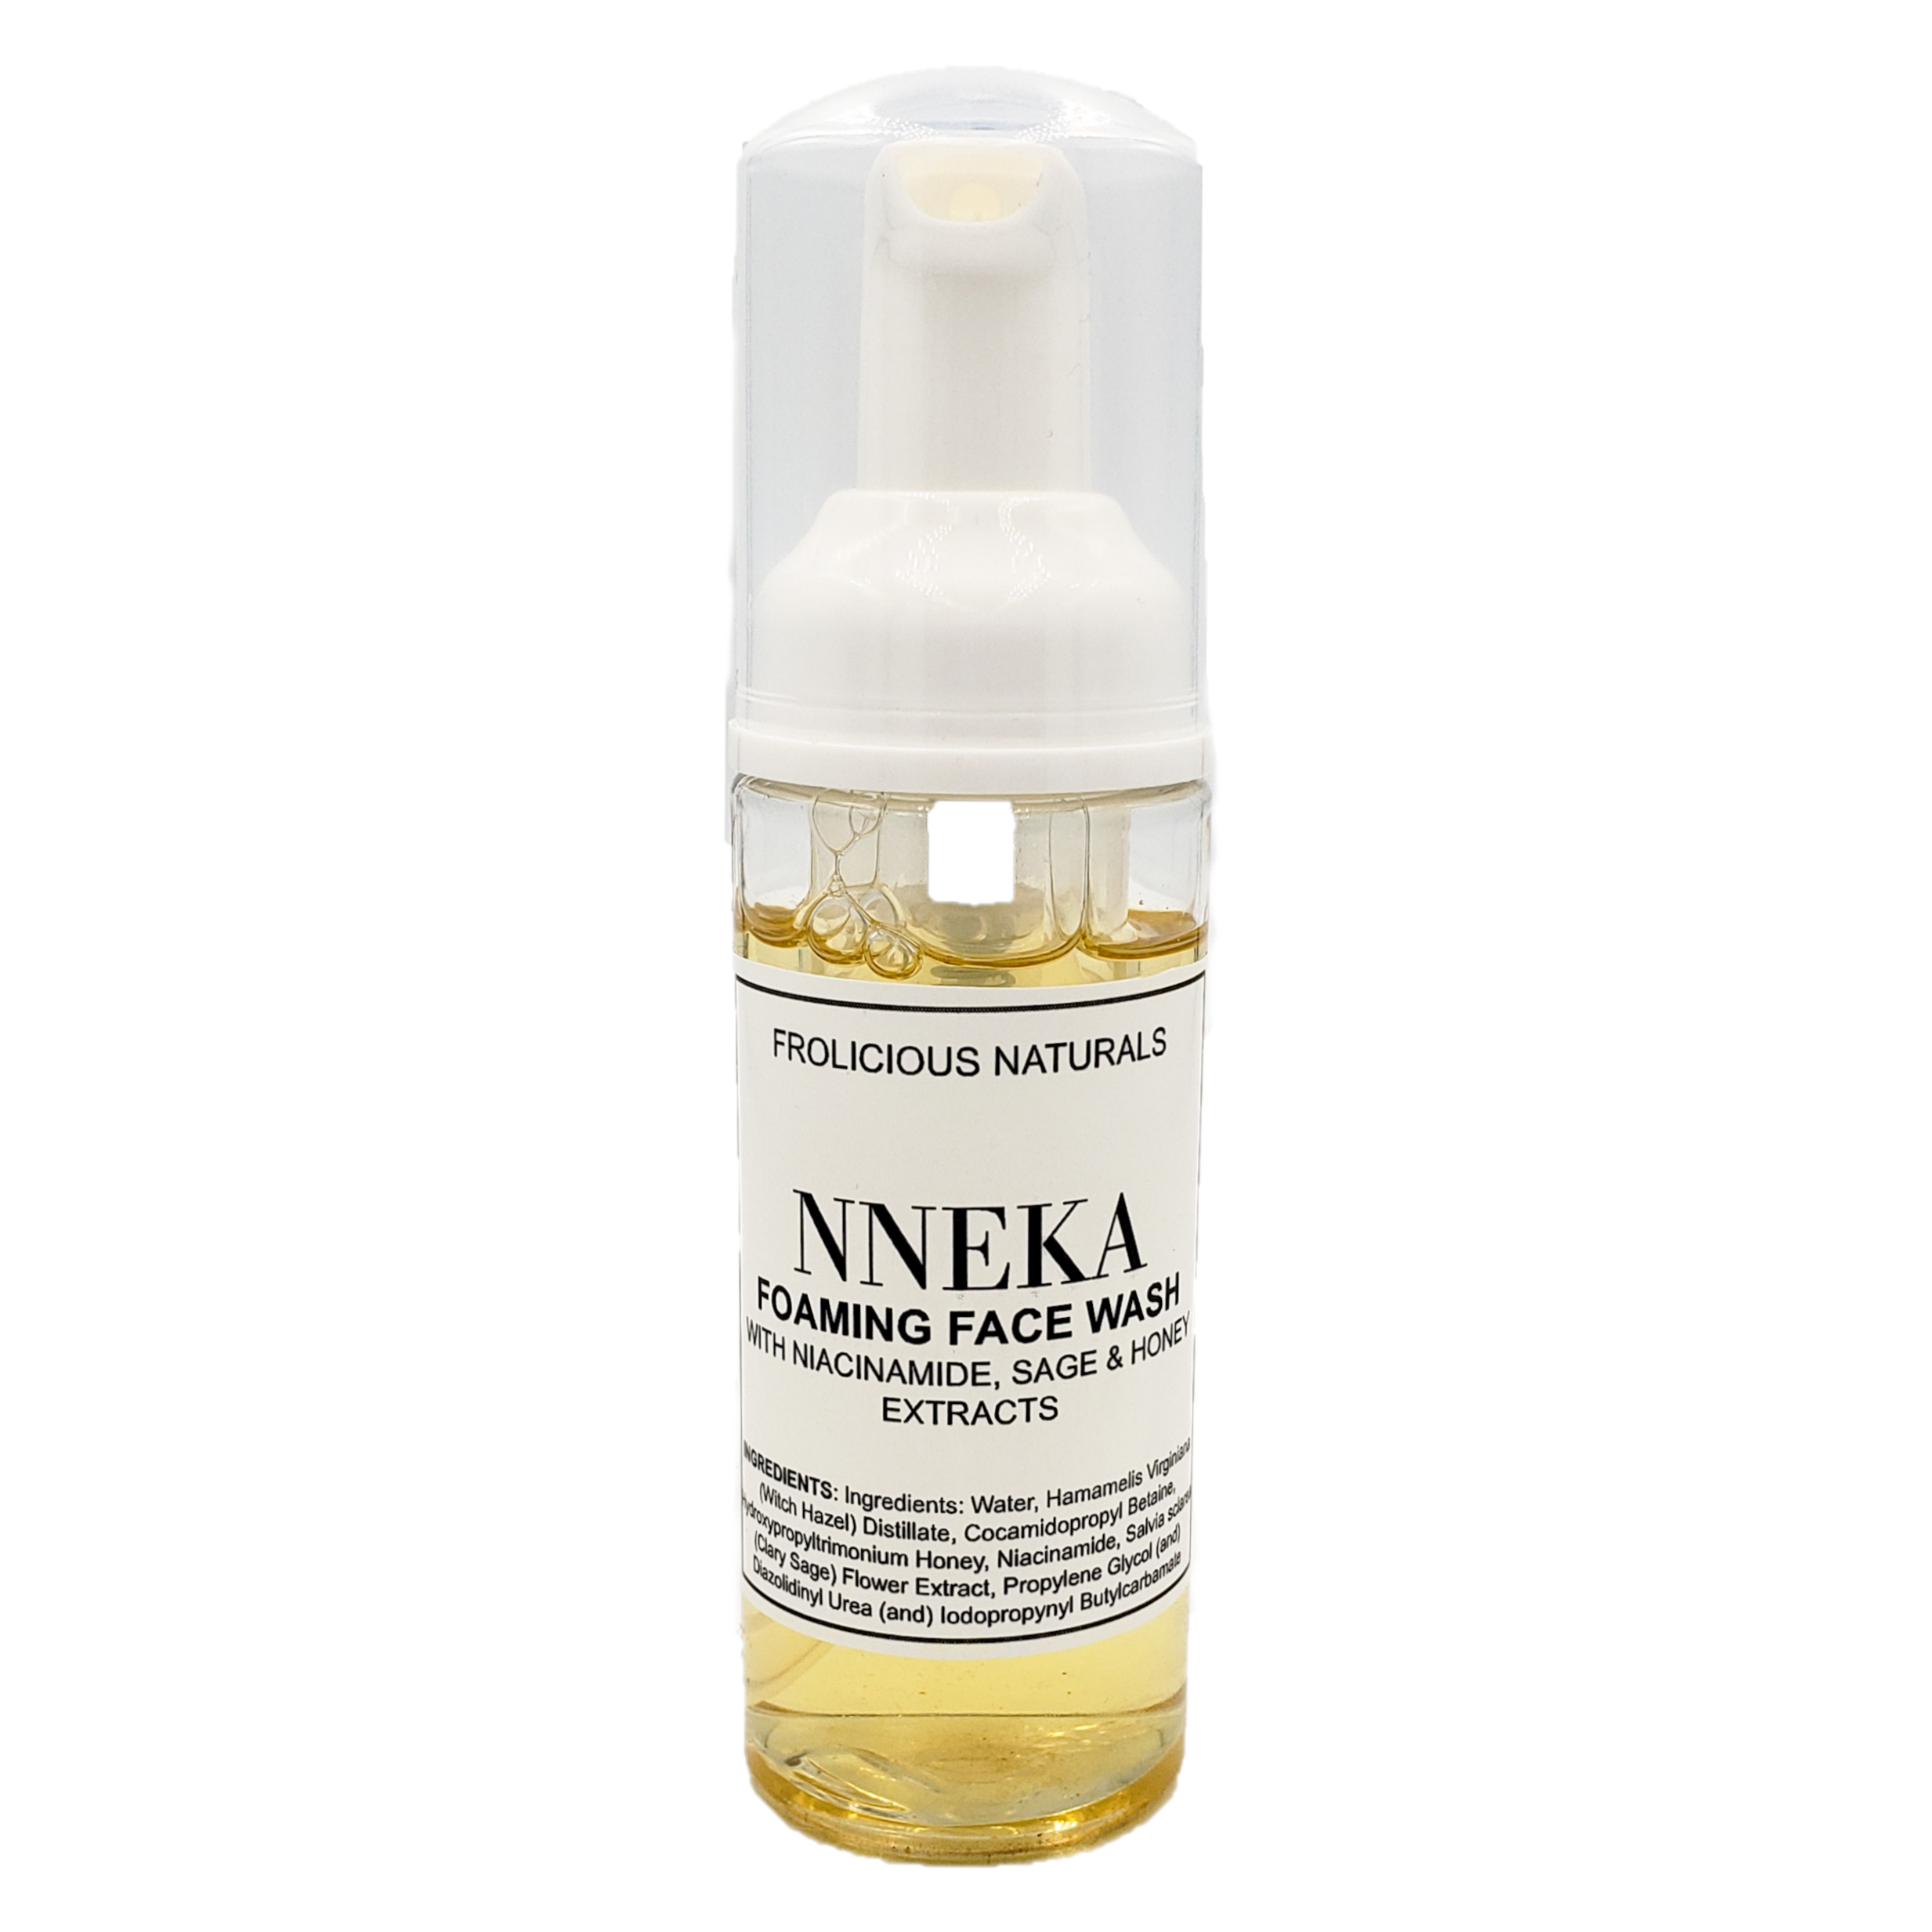 Nneka Niacinamide Foaming Face Wash